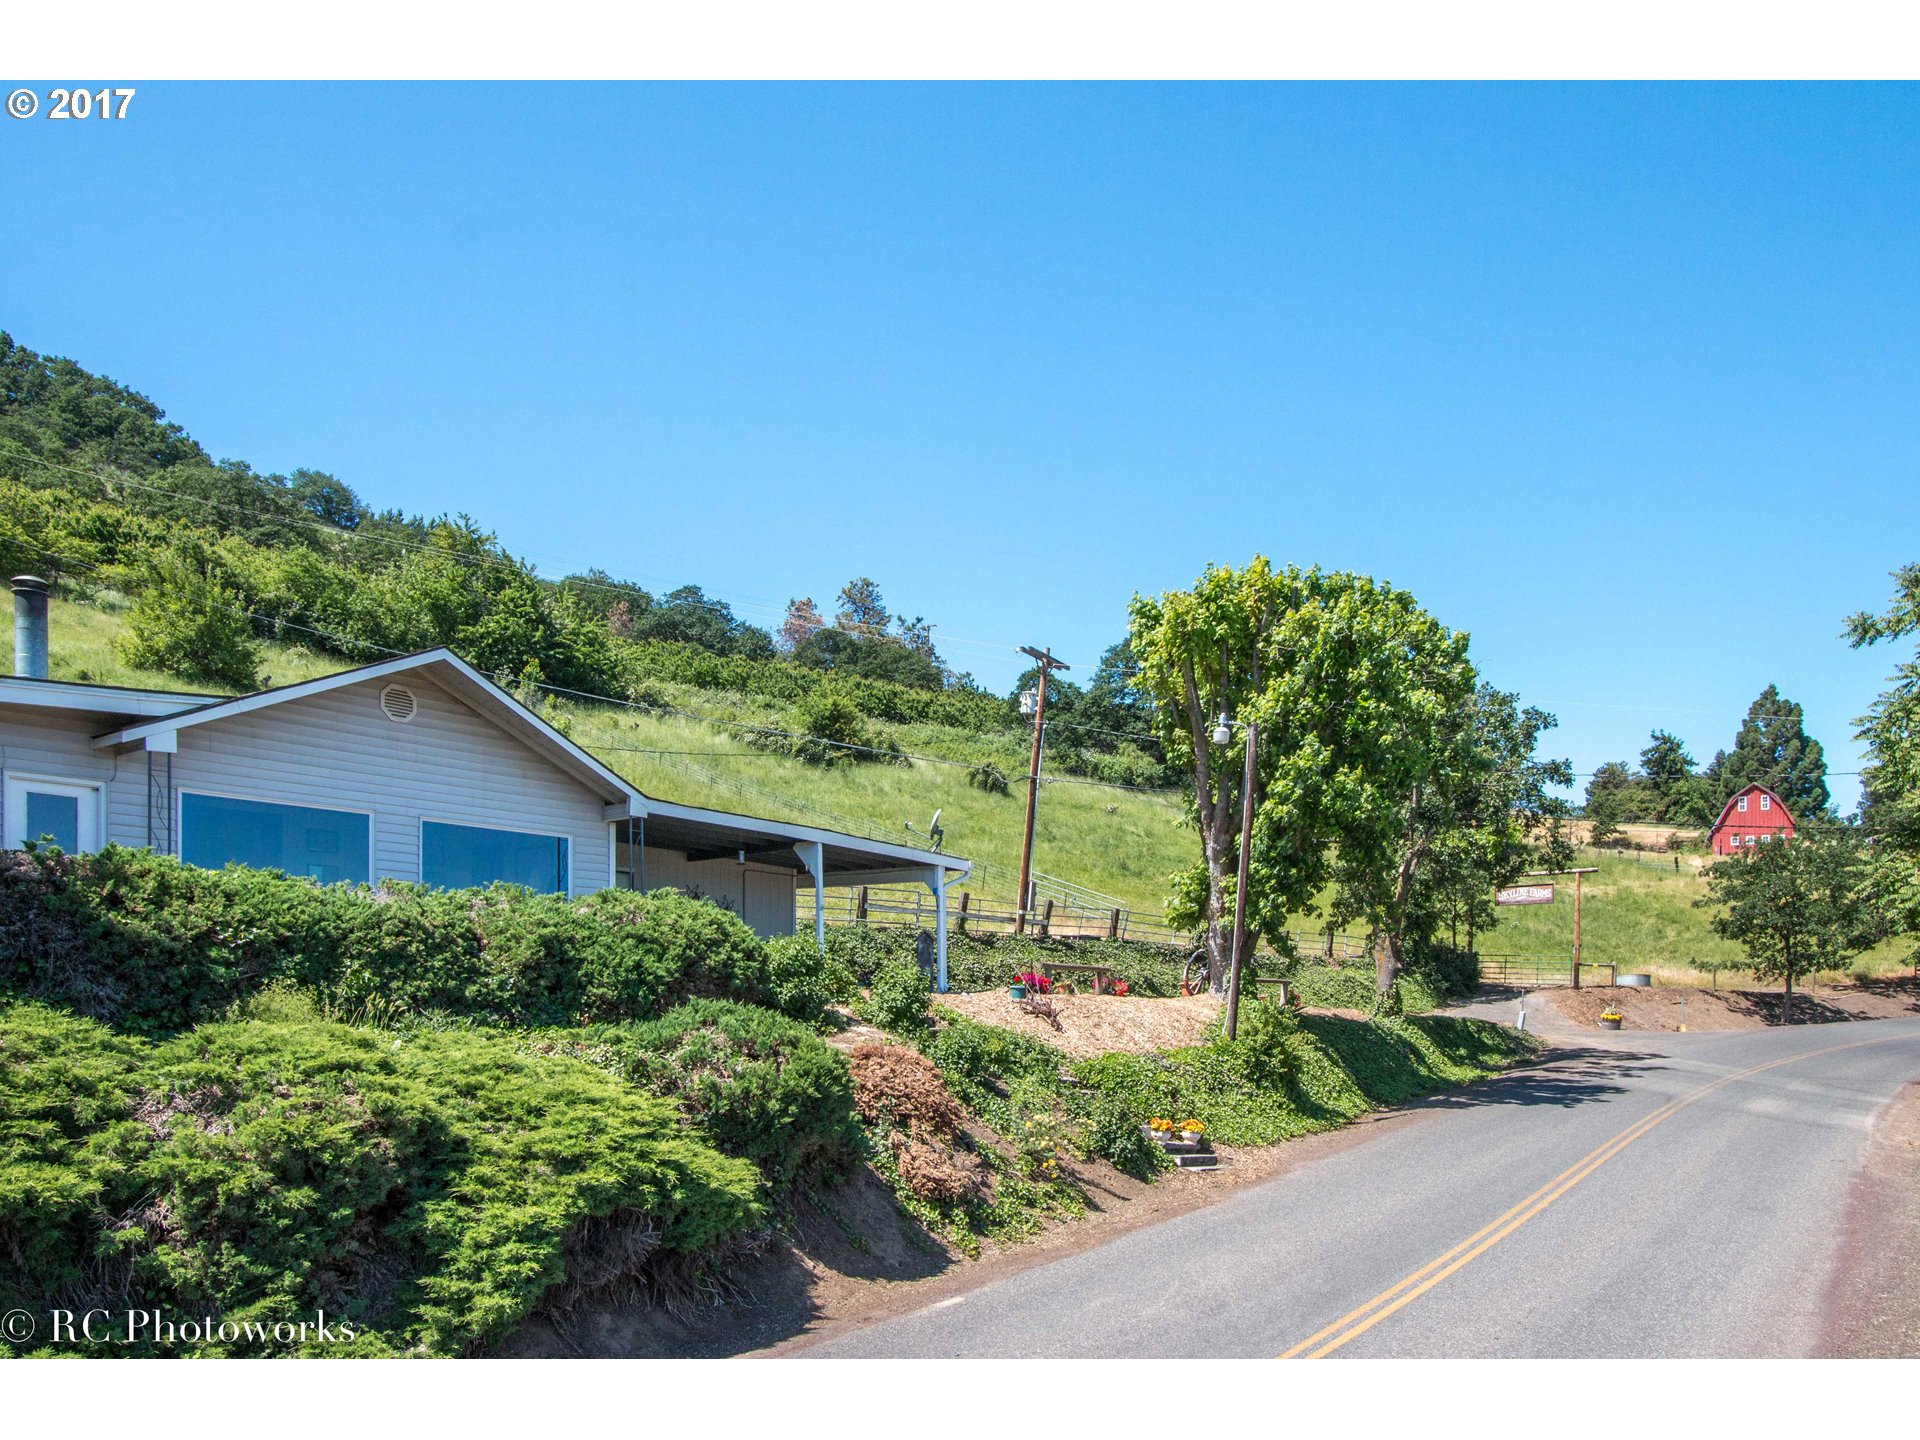 3612 SKYLINE RD, The Dalles, OR 97058